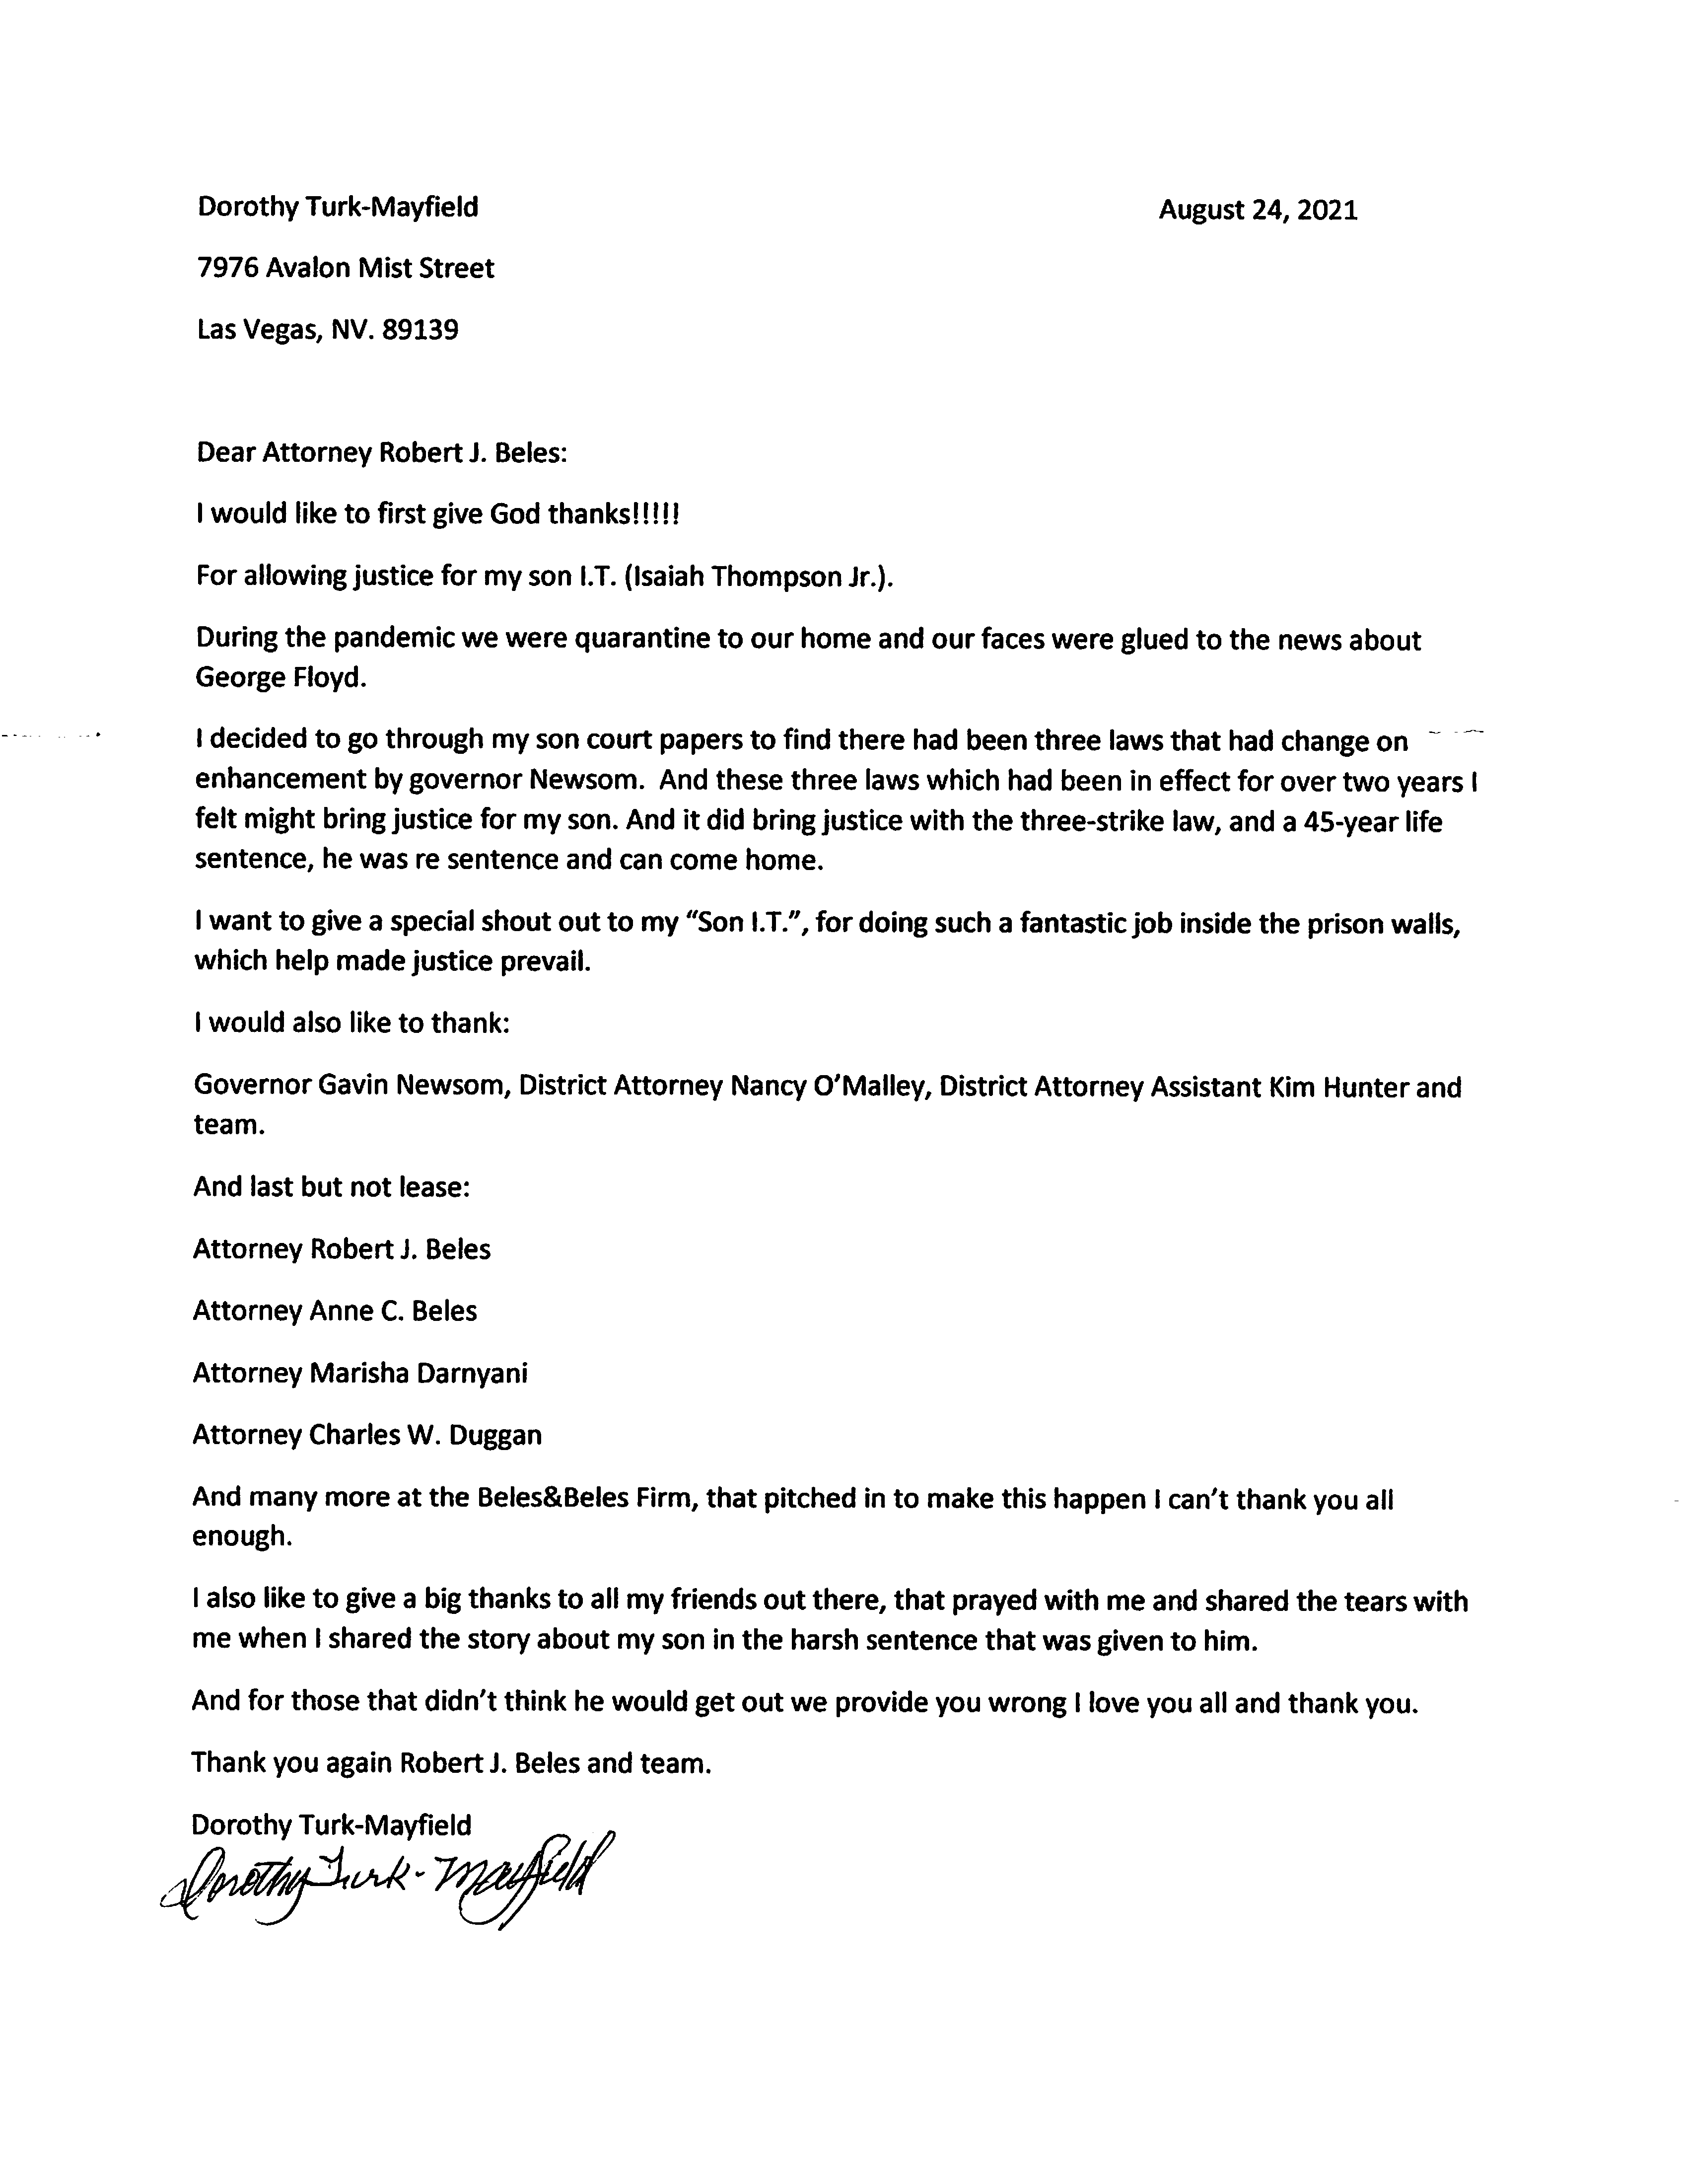 thank-you-letter-2021